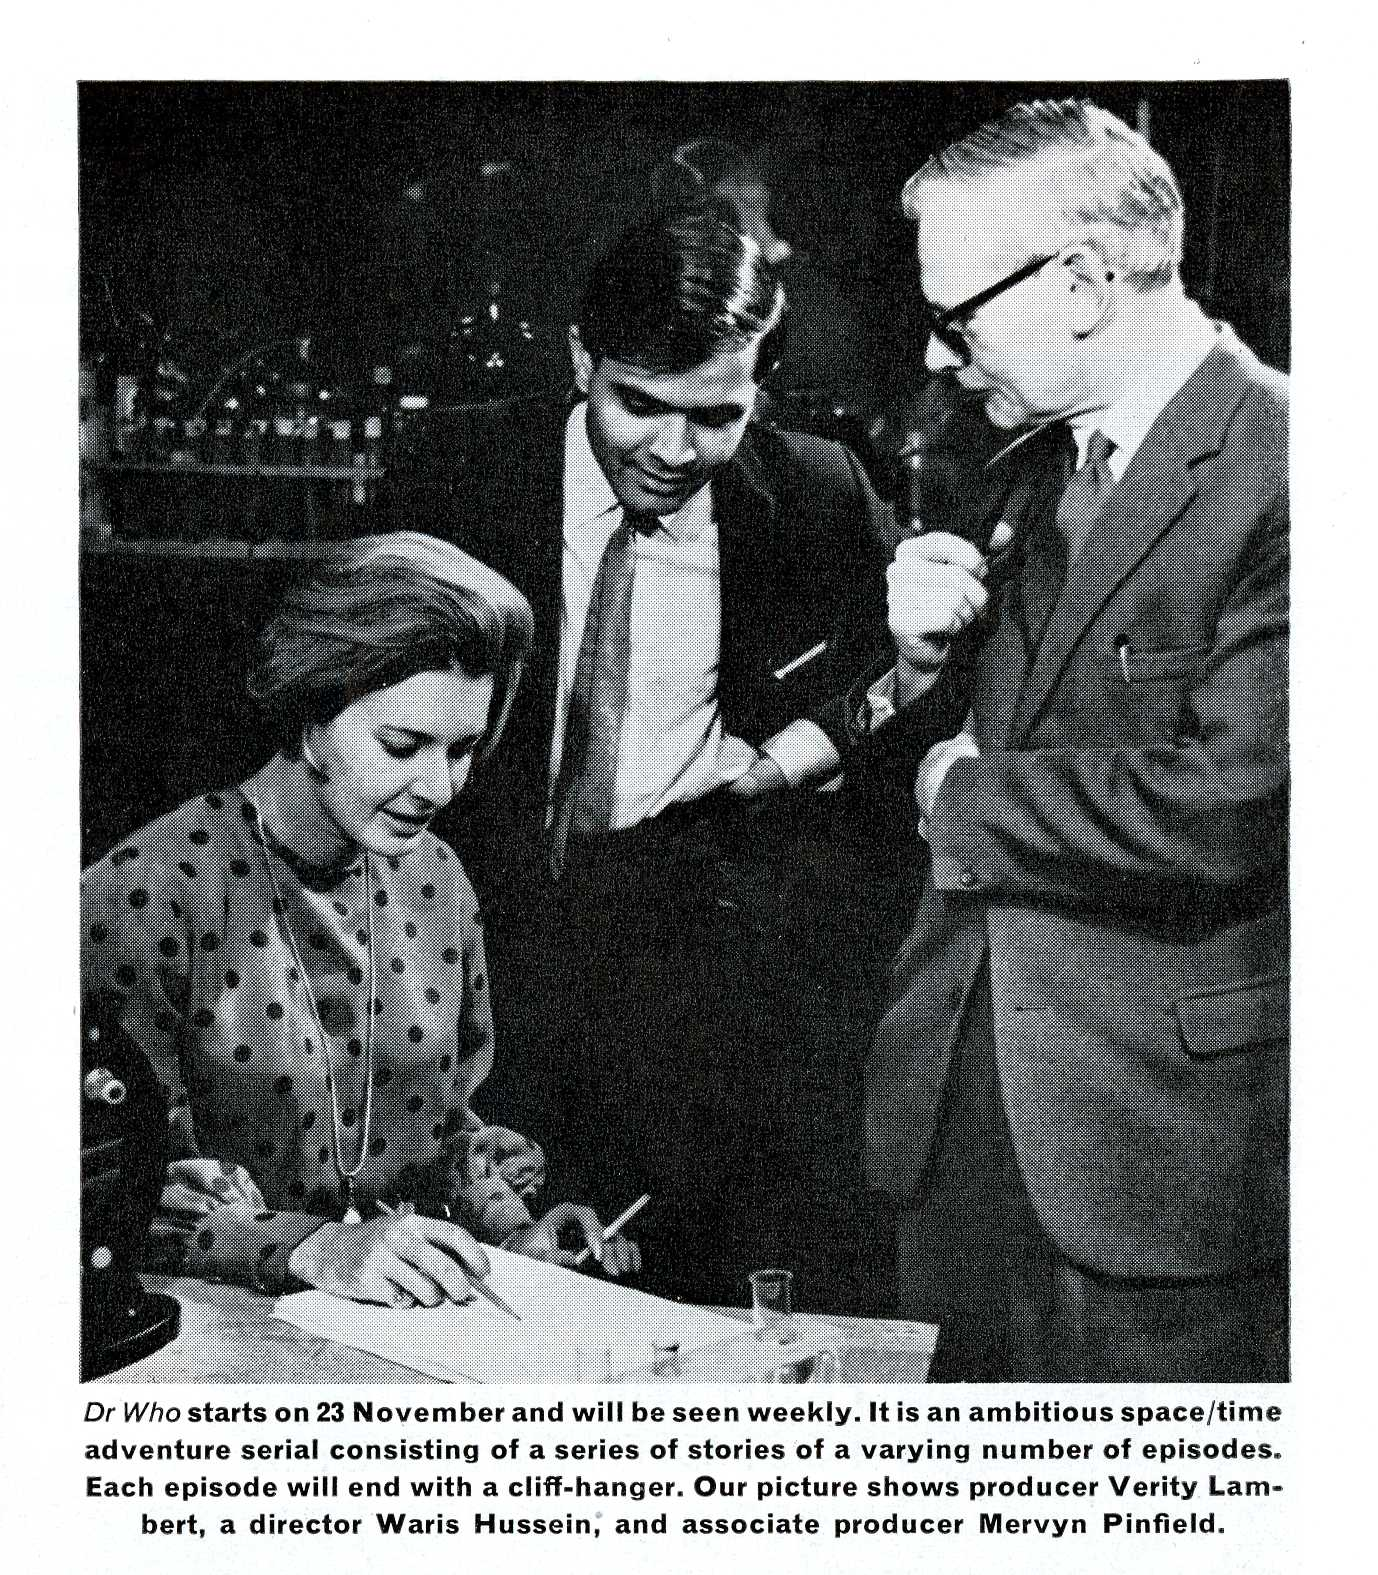 Pre-broadcast media coverage in Ariel, the BBC staff magazine, Vol 8, No 11, 24 October 1963